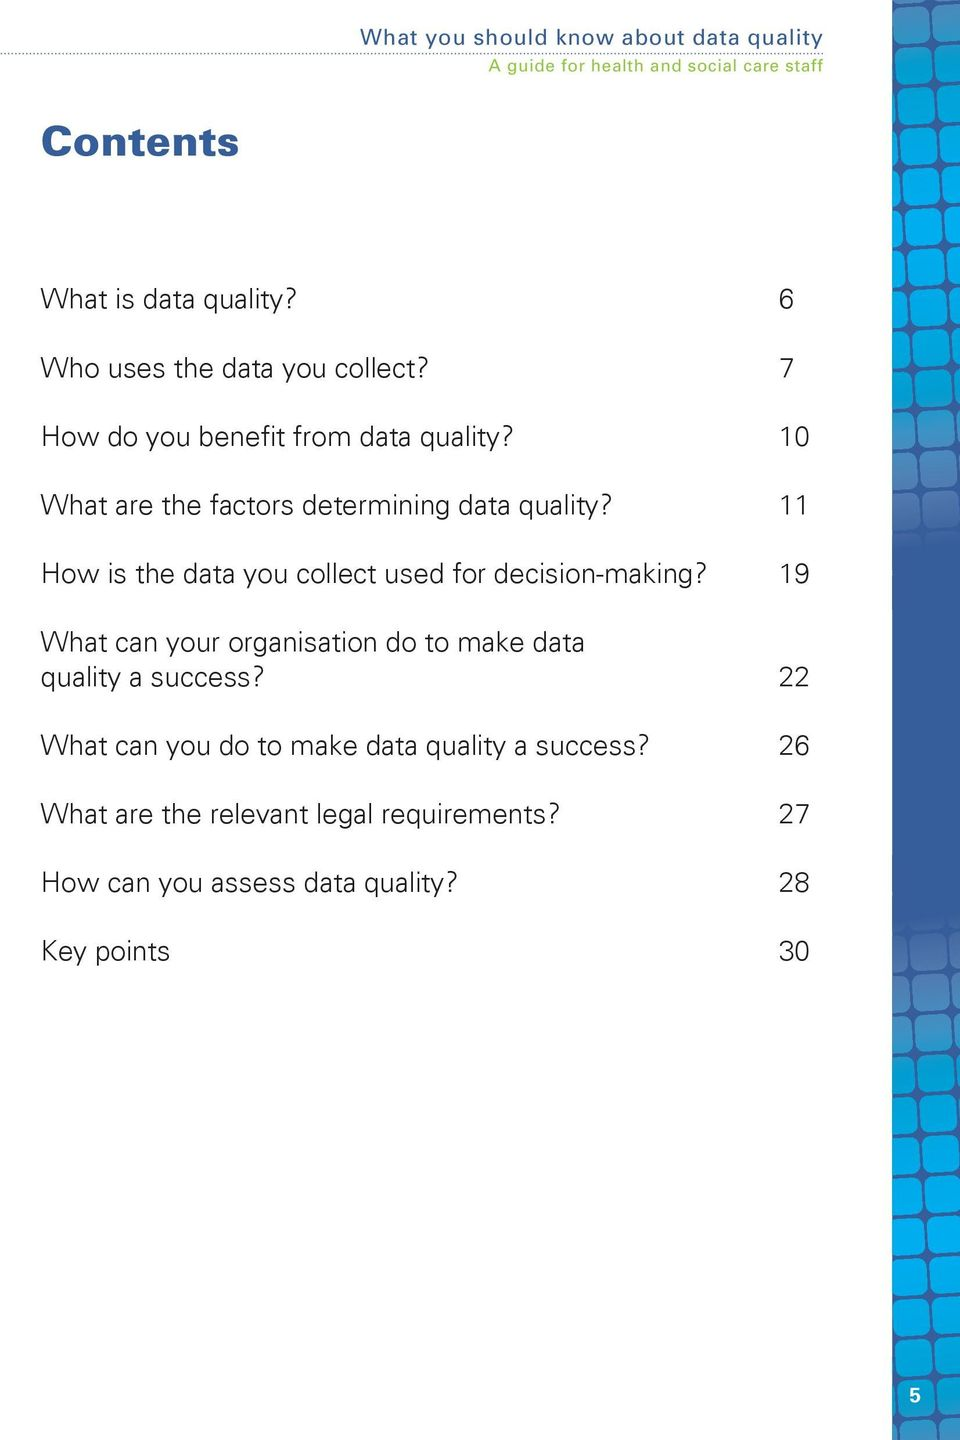 19 What can your organisation do to make data quality a success?